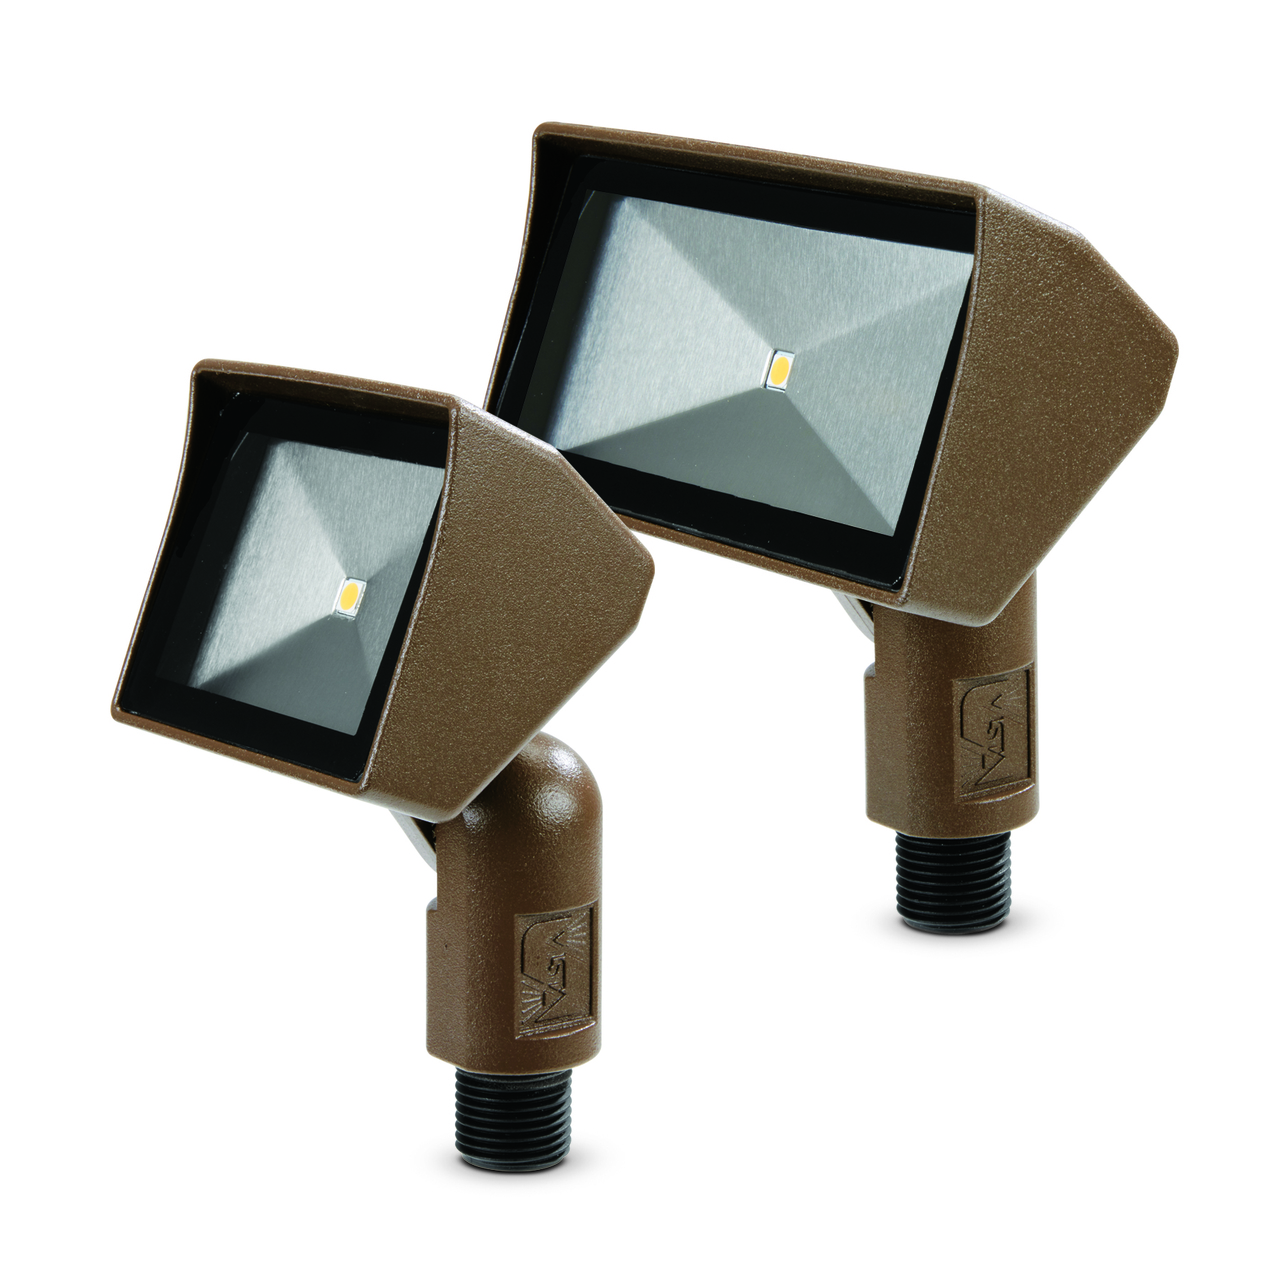 Vista Professional Outdoor Lighting Adds 2 Mini Floodlights